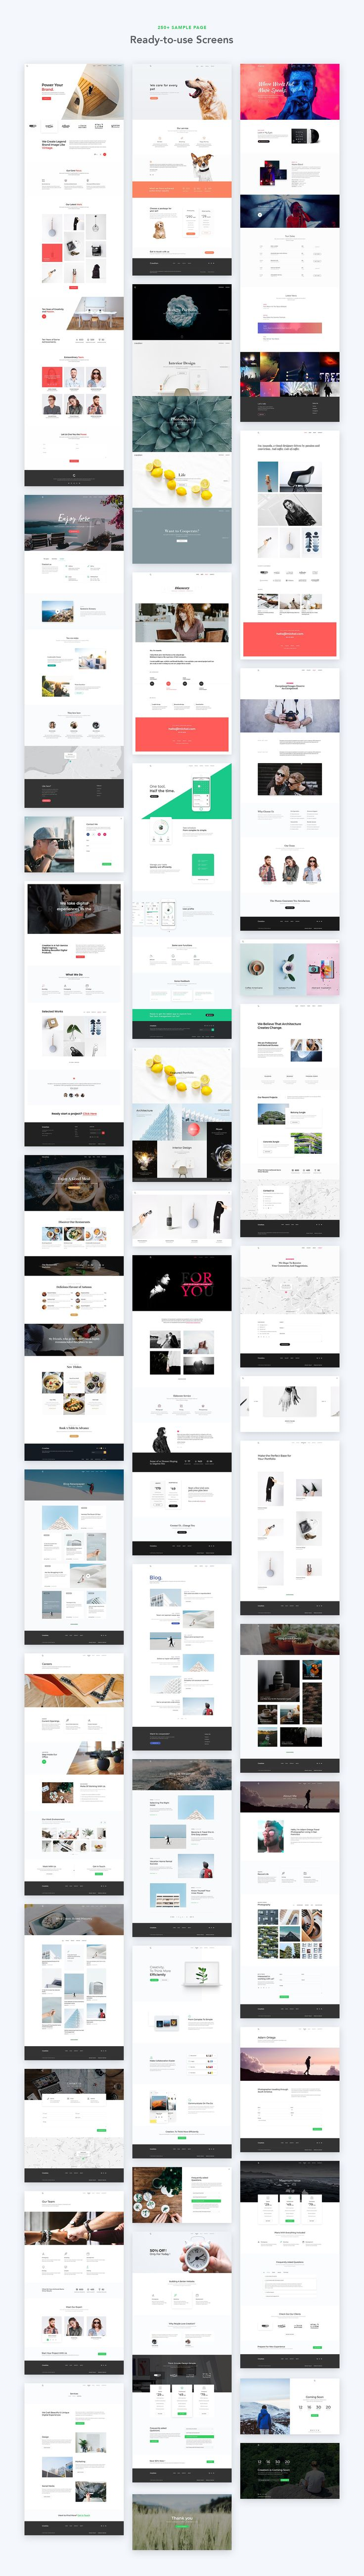 18 best web&ui&app images on Pinterest | Website designs, Design ...